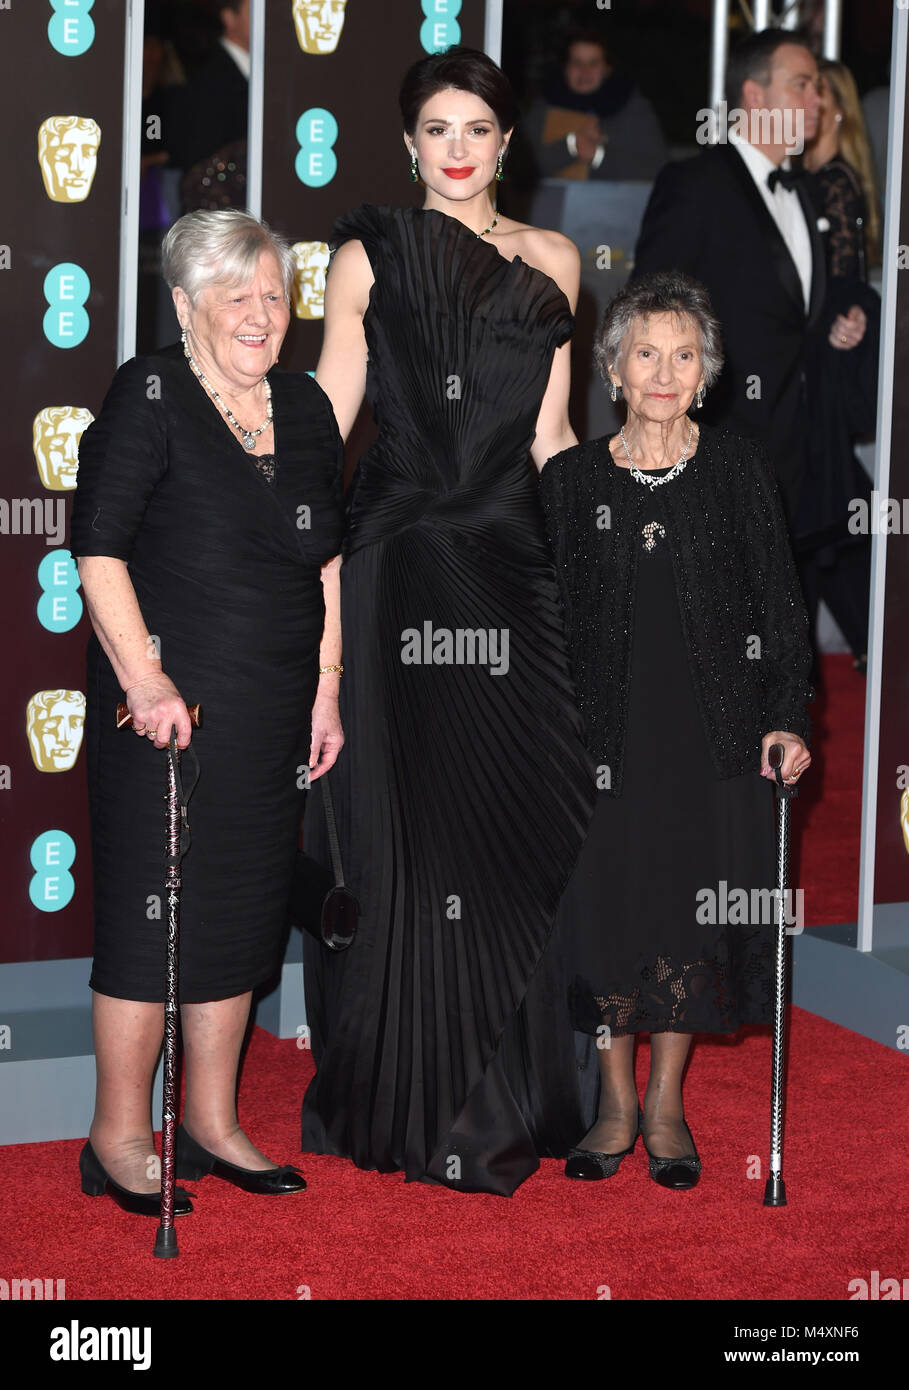 Photo Must Be Credited ©Alpha Press 079965 18/02/2018 Gemma Arterton with Eileen Pullen and Gwen Davis EE Bafta - Stock Image